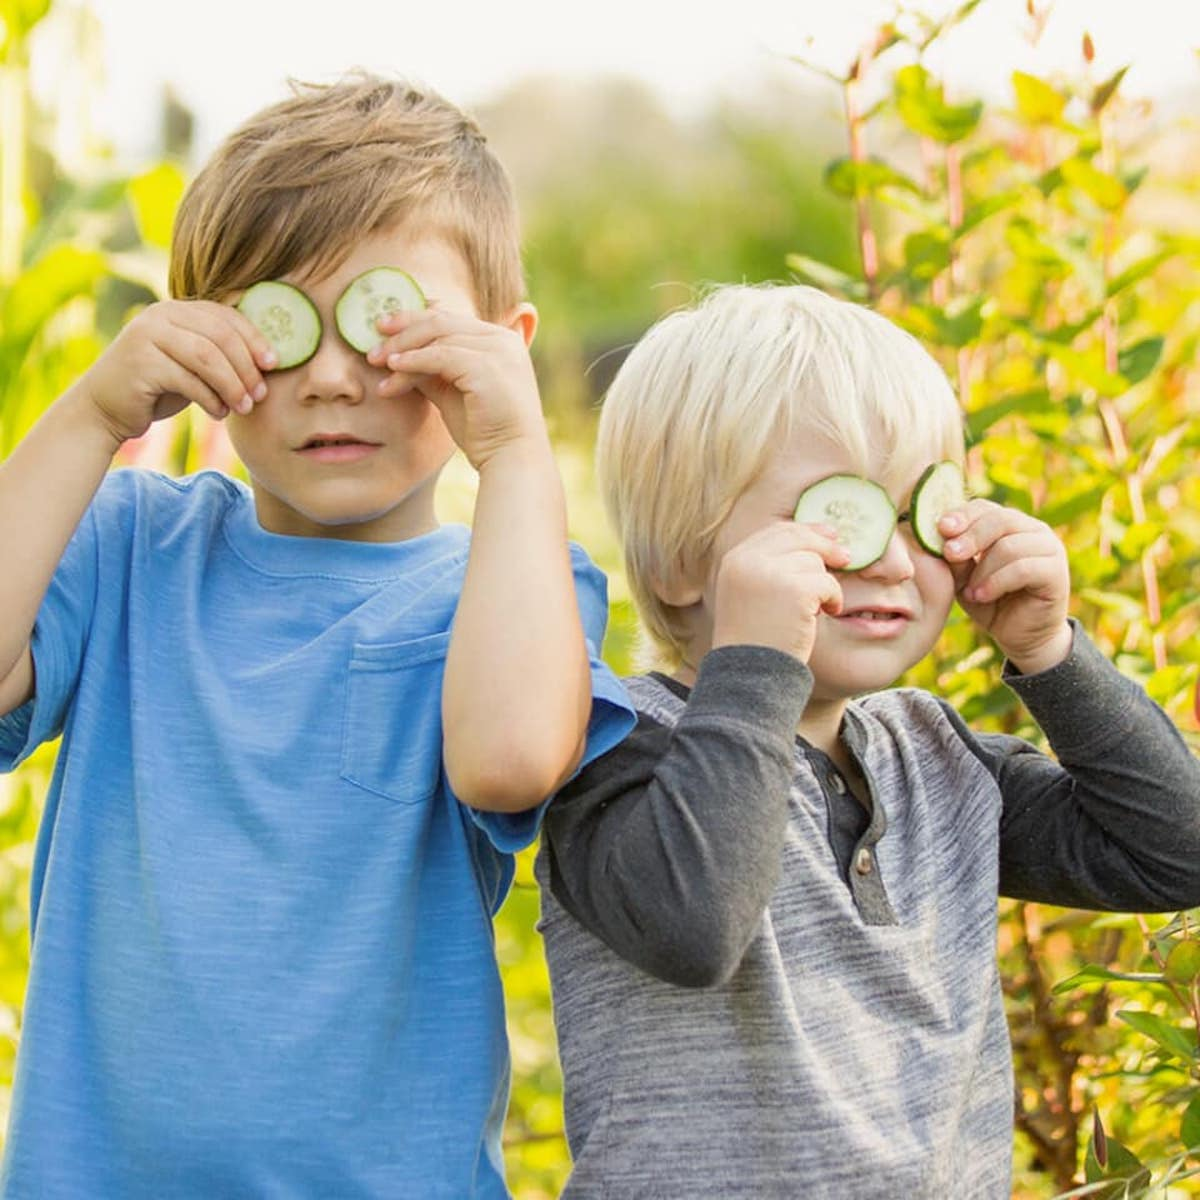 Two childen in a field with cucumbers over their eyes